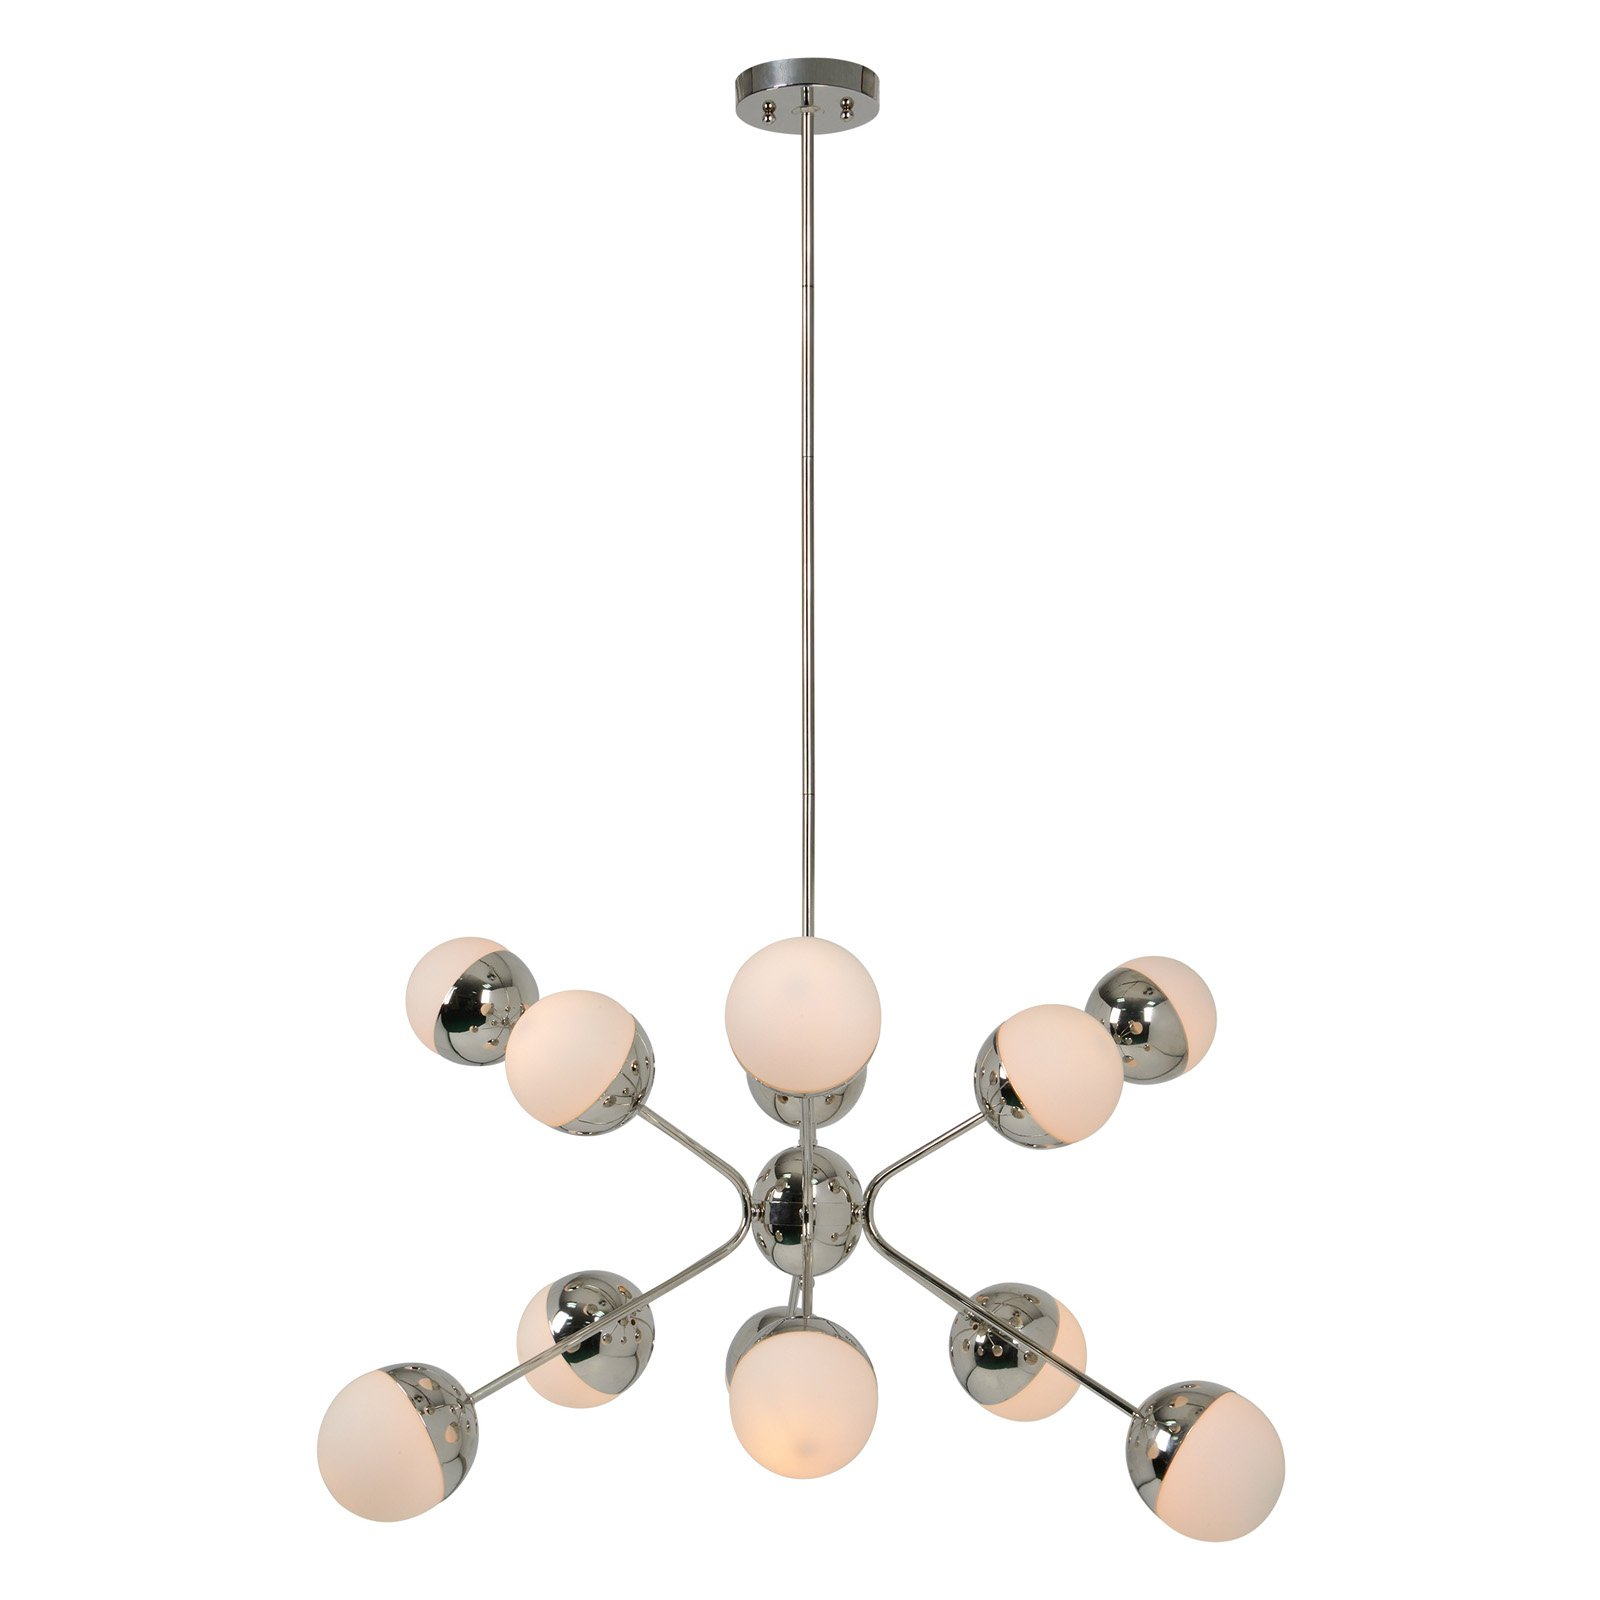 Ren Wil Krotos Lpc4077 Chandelier | Products In 2019 Within Vroman 12 Light Sputnik Chandeliers (View 23 of 30)